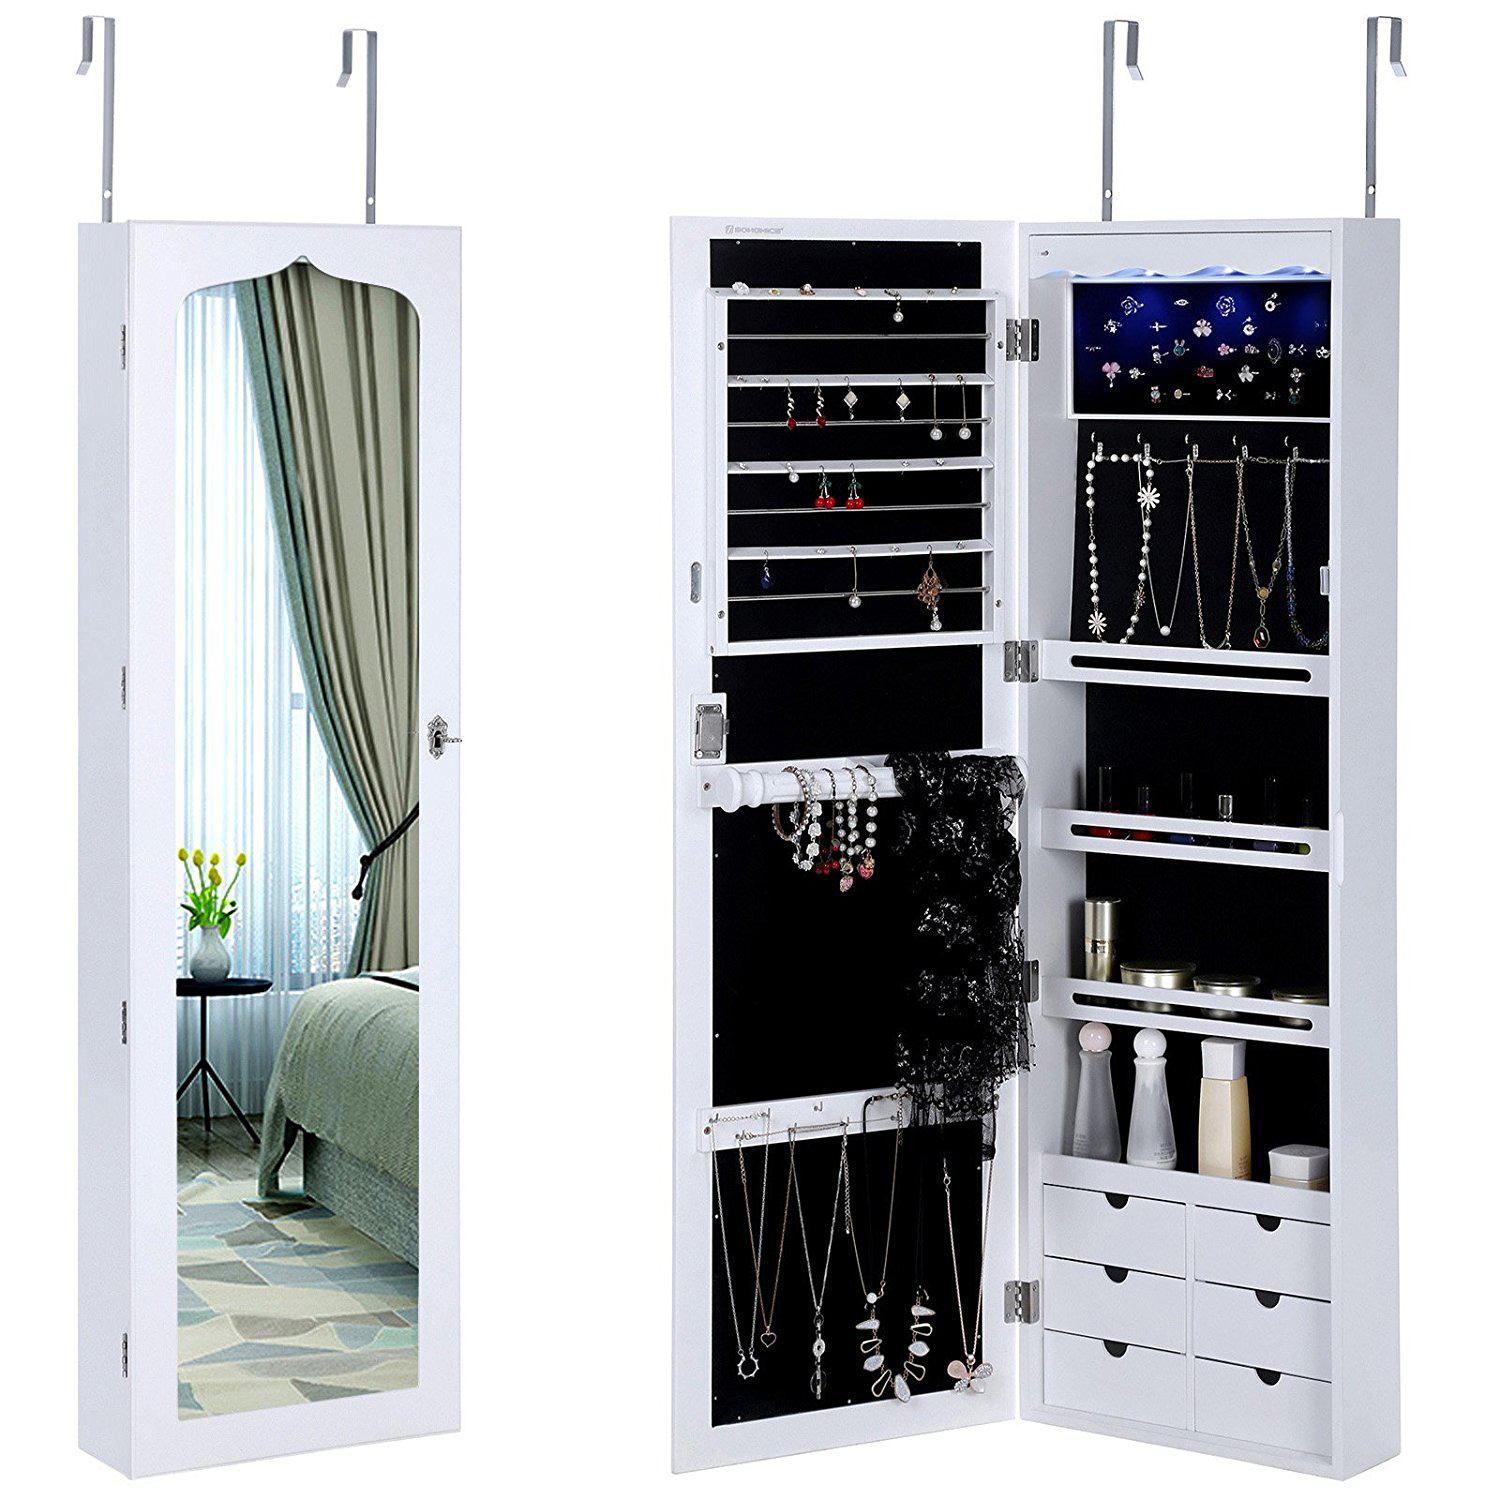 Full Length Mirror Over The Door White Jewelry Armoire